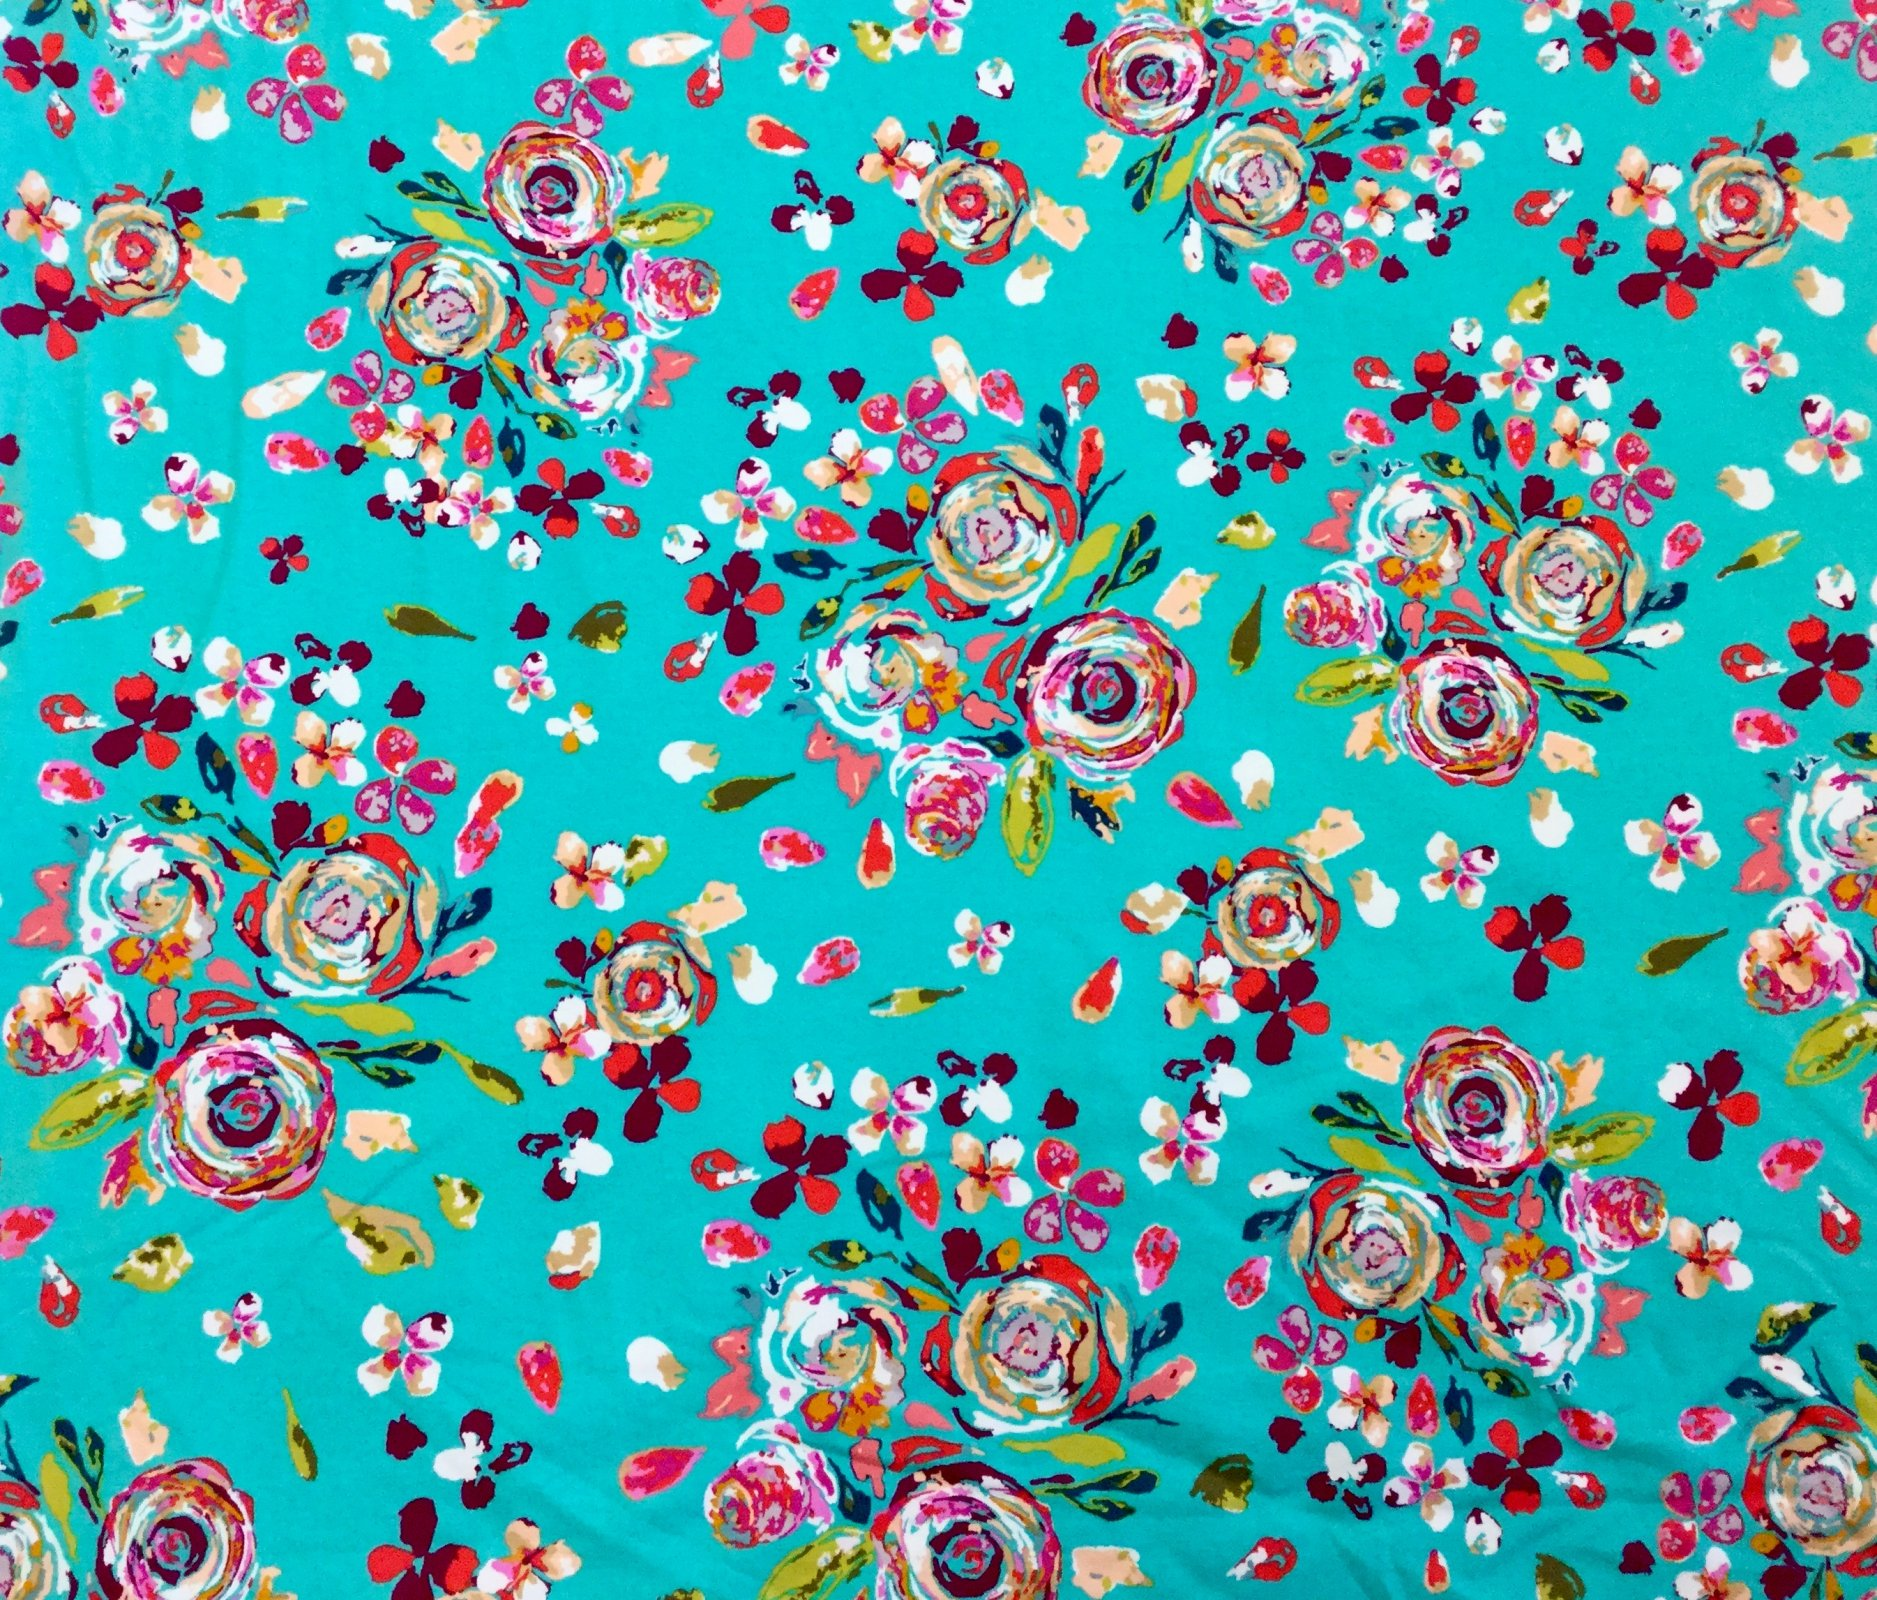 Boho Fusion Boquet Floral Cotton Knit Fabric Apparel Fabric AR49